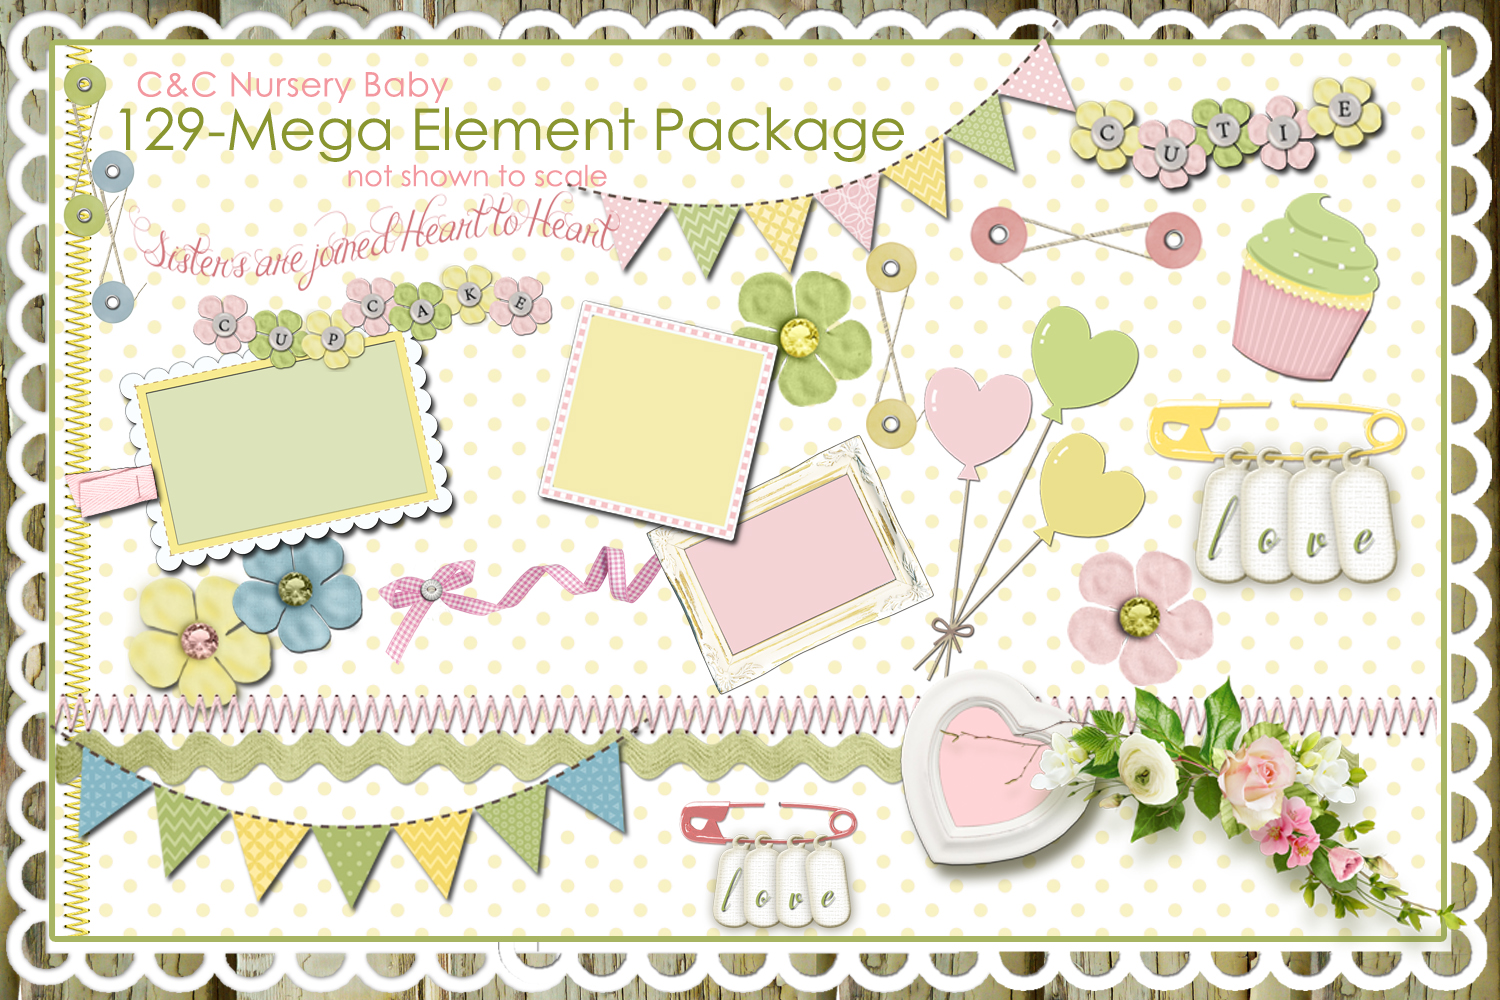 Scrapbook clipart png royalty free library Nursery Baby Pastel Collections-129 ElementsClipart Designer Scrapbook png royalty free library